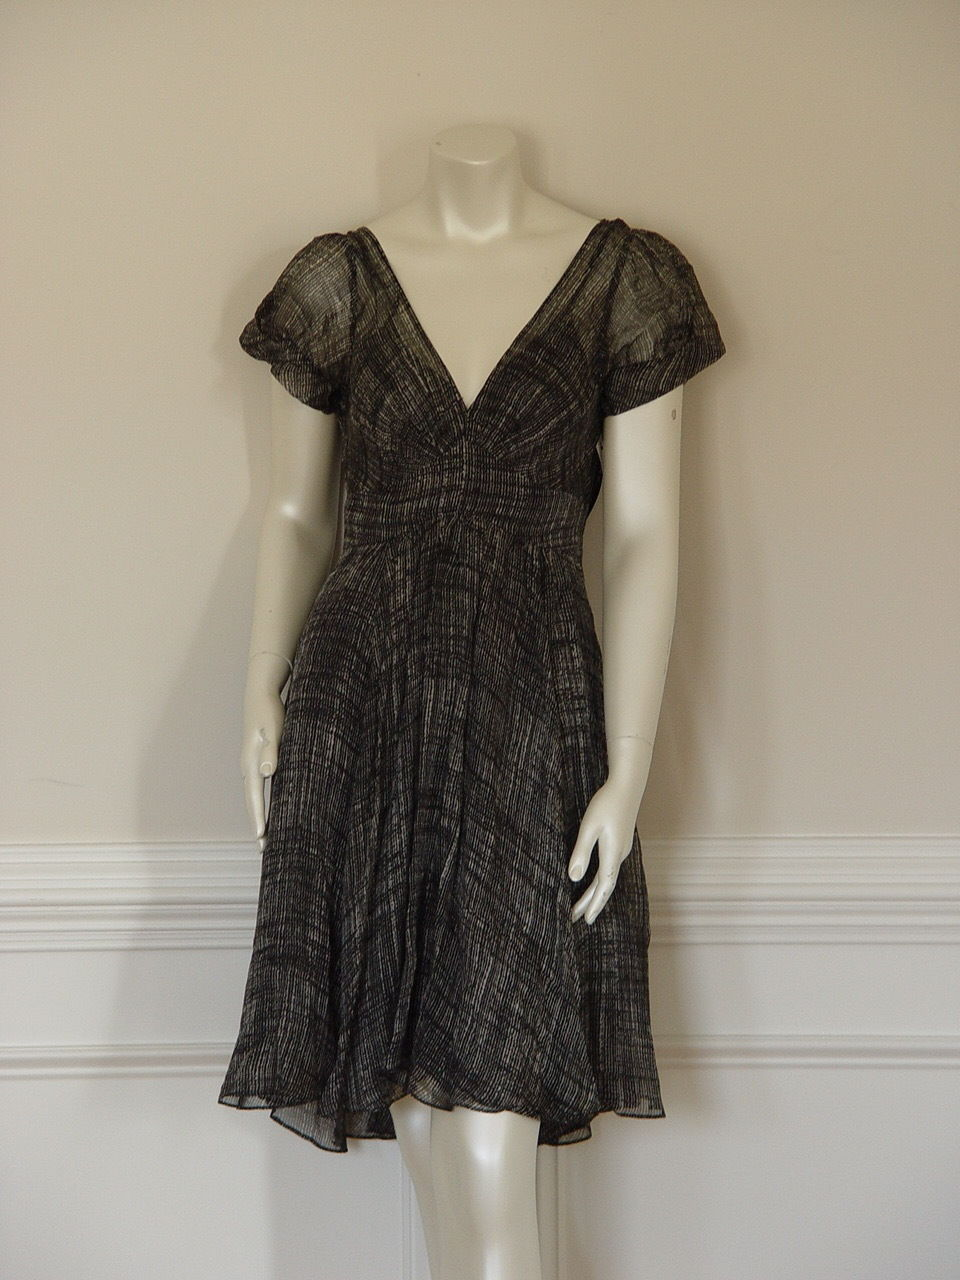 Primary image for DKNY CAP SLEEVE TWEED PRINT COMBO SILK DRESS - US 8 - UK 12